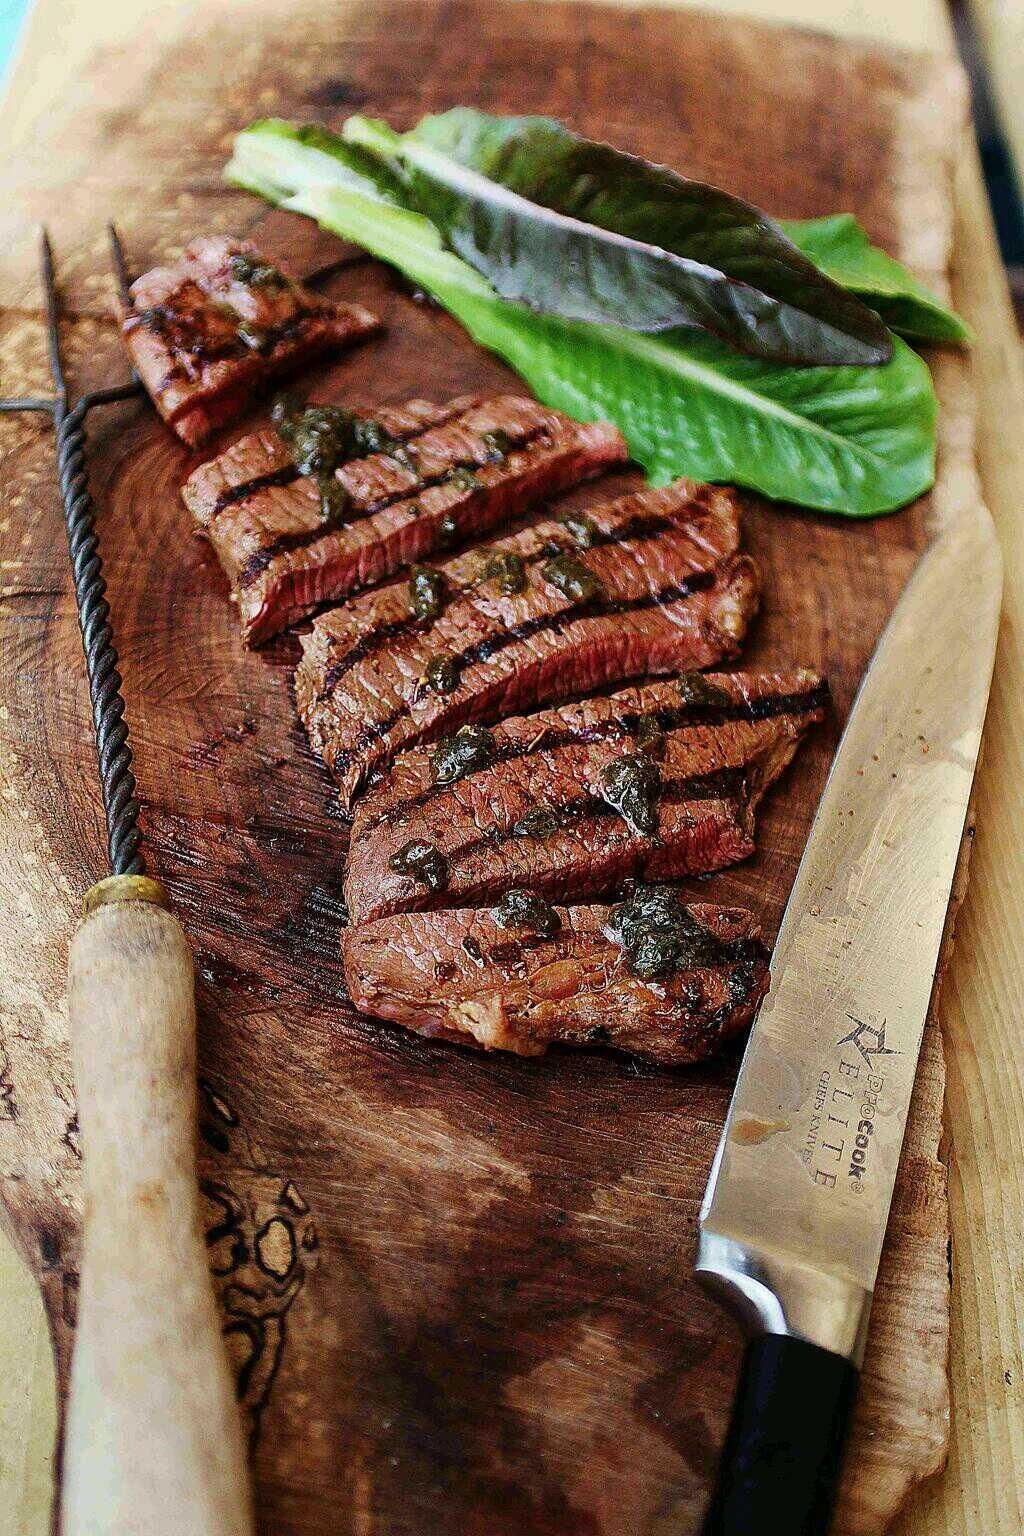 Cowboy steak with chimichurri by Marcus Bawdon.